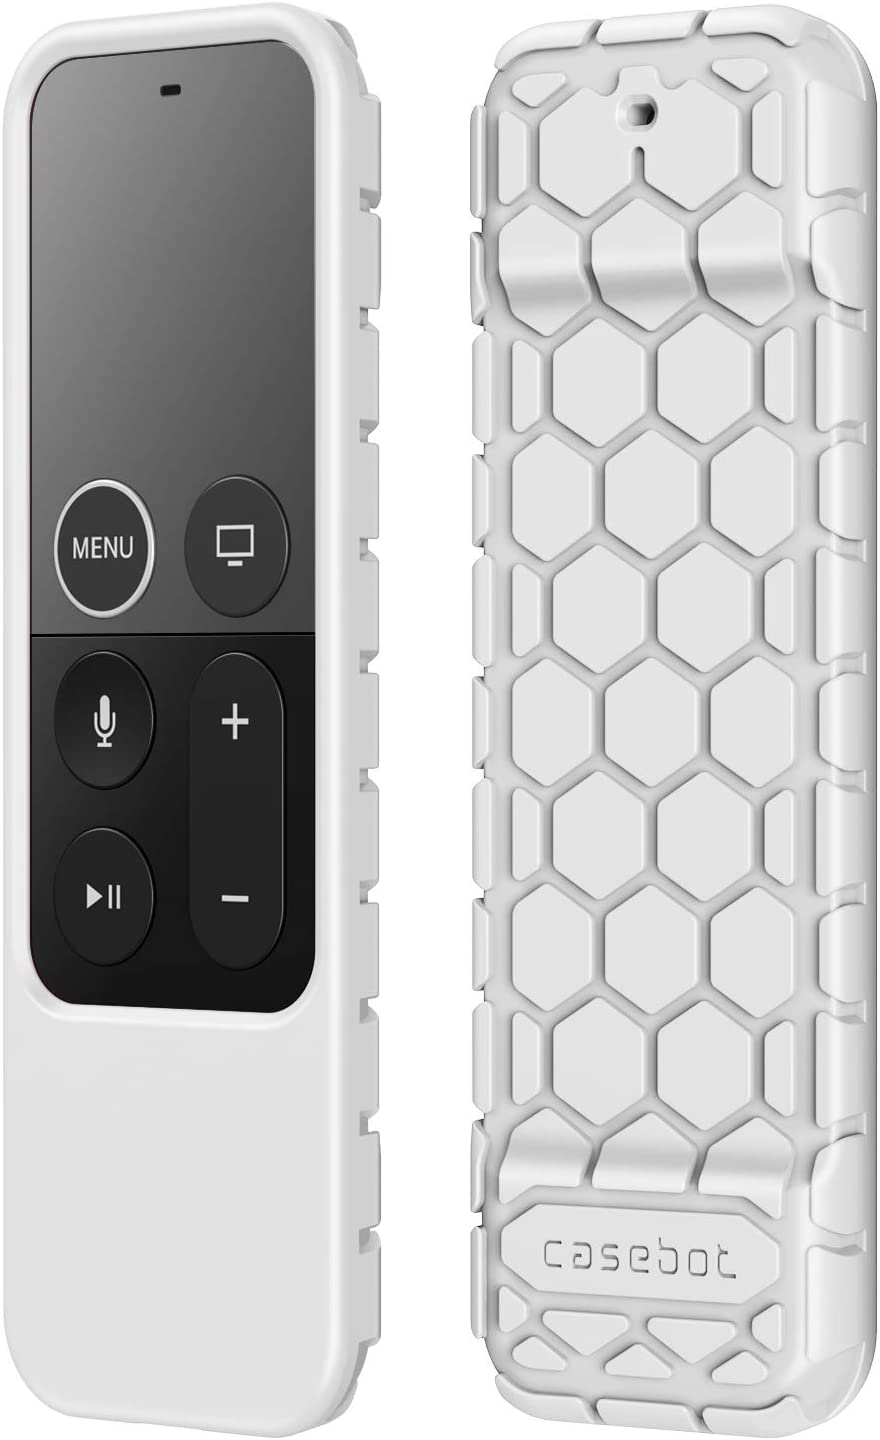 Fintie Protective Case for Apple TV 4K 5th, 4th Gen Remote - CaseBot (Honey Comb Series) Lightweight (Anti Slip) Shock Proof Silicone Cover for Apple TV Siri Remote Controller, White